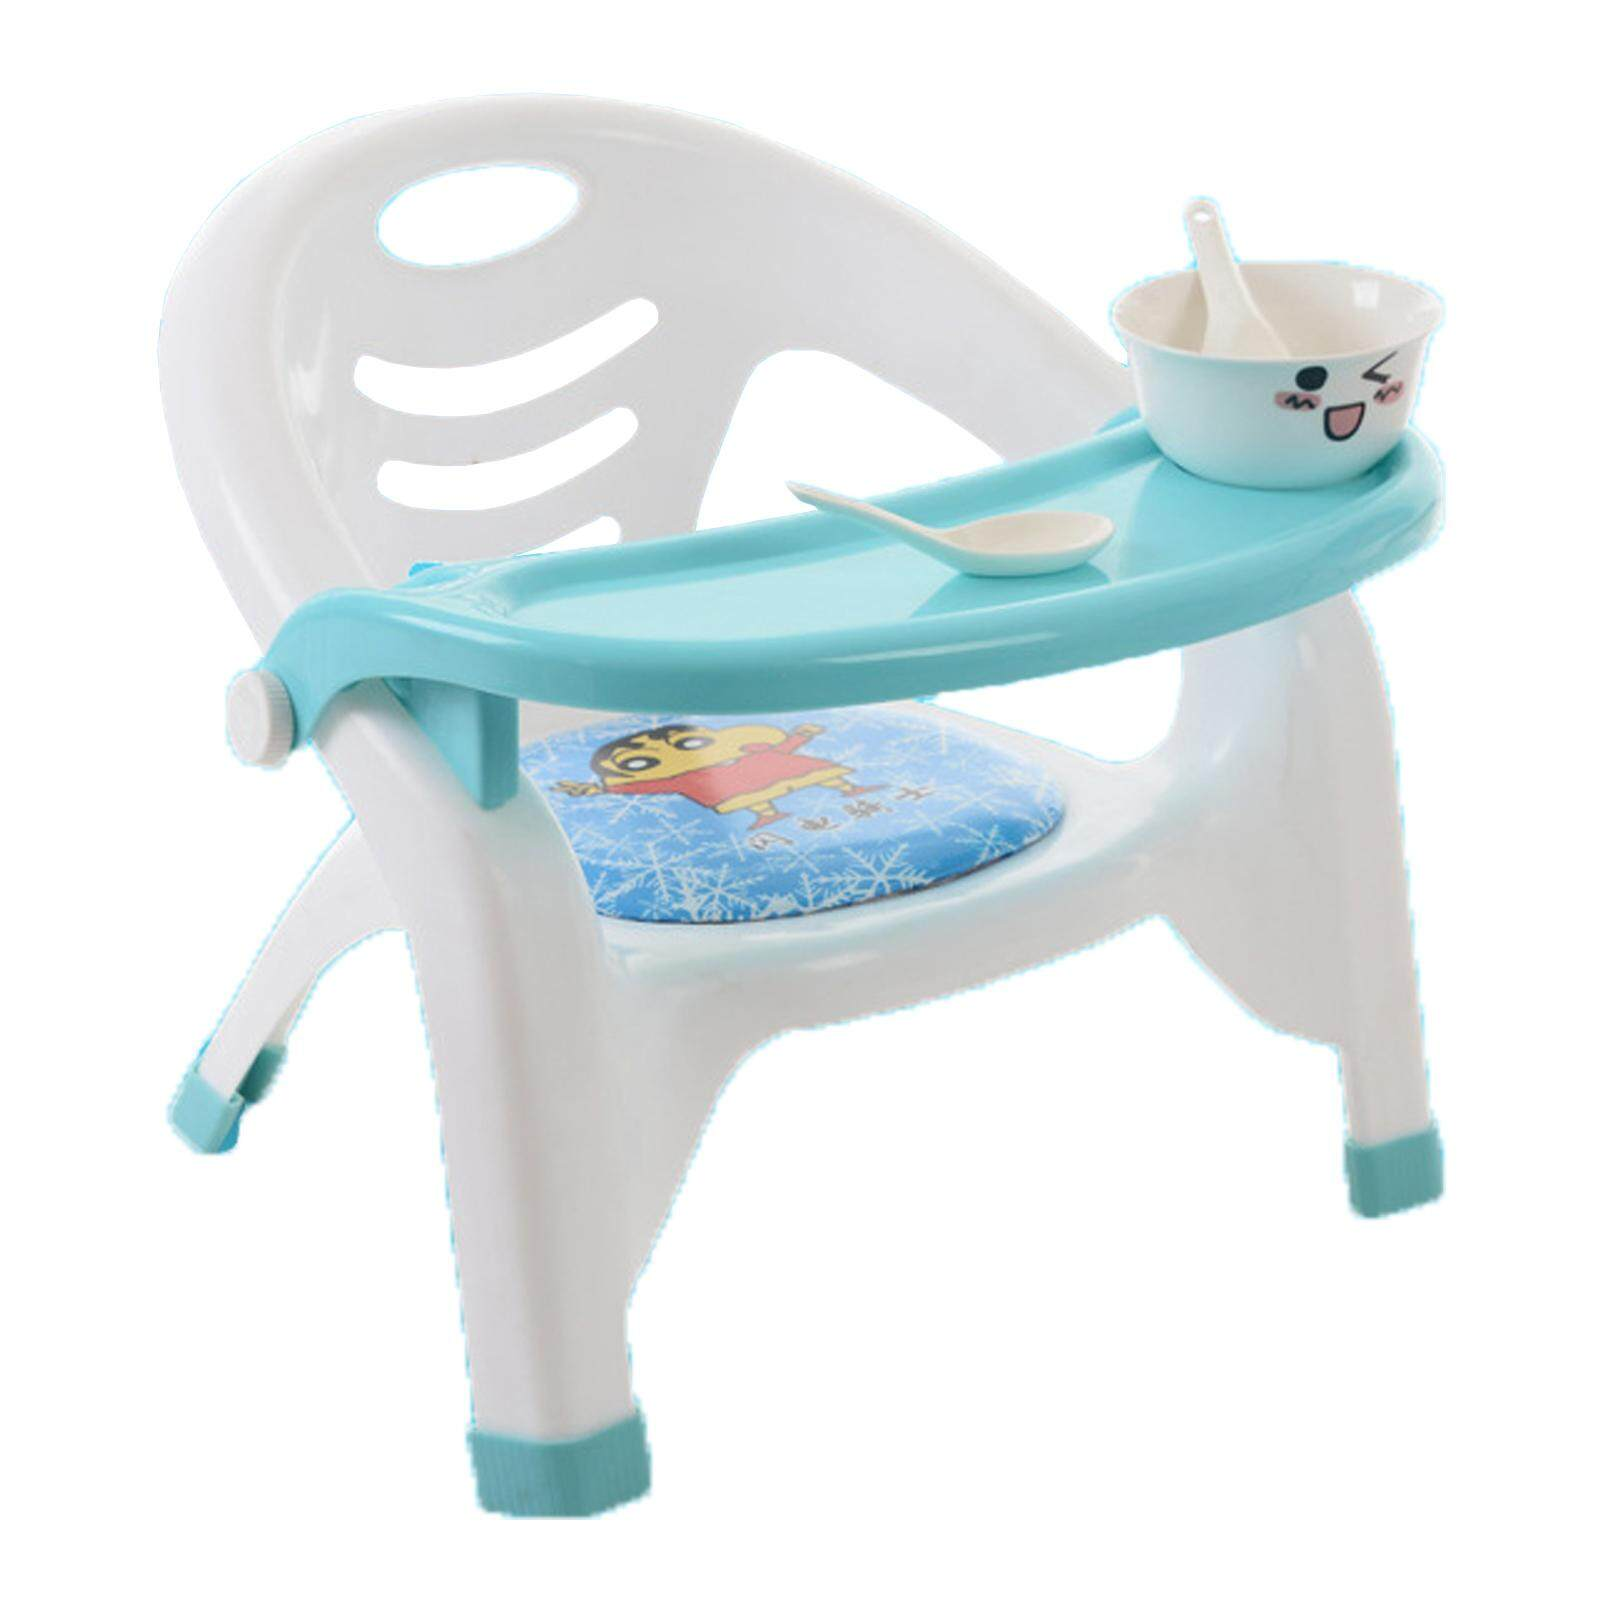 NaVa Detachable Tray Baby Toddler Dinning Seat Chair (Light Blue)